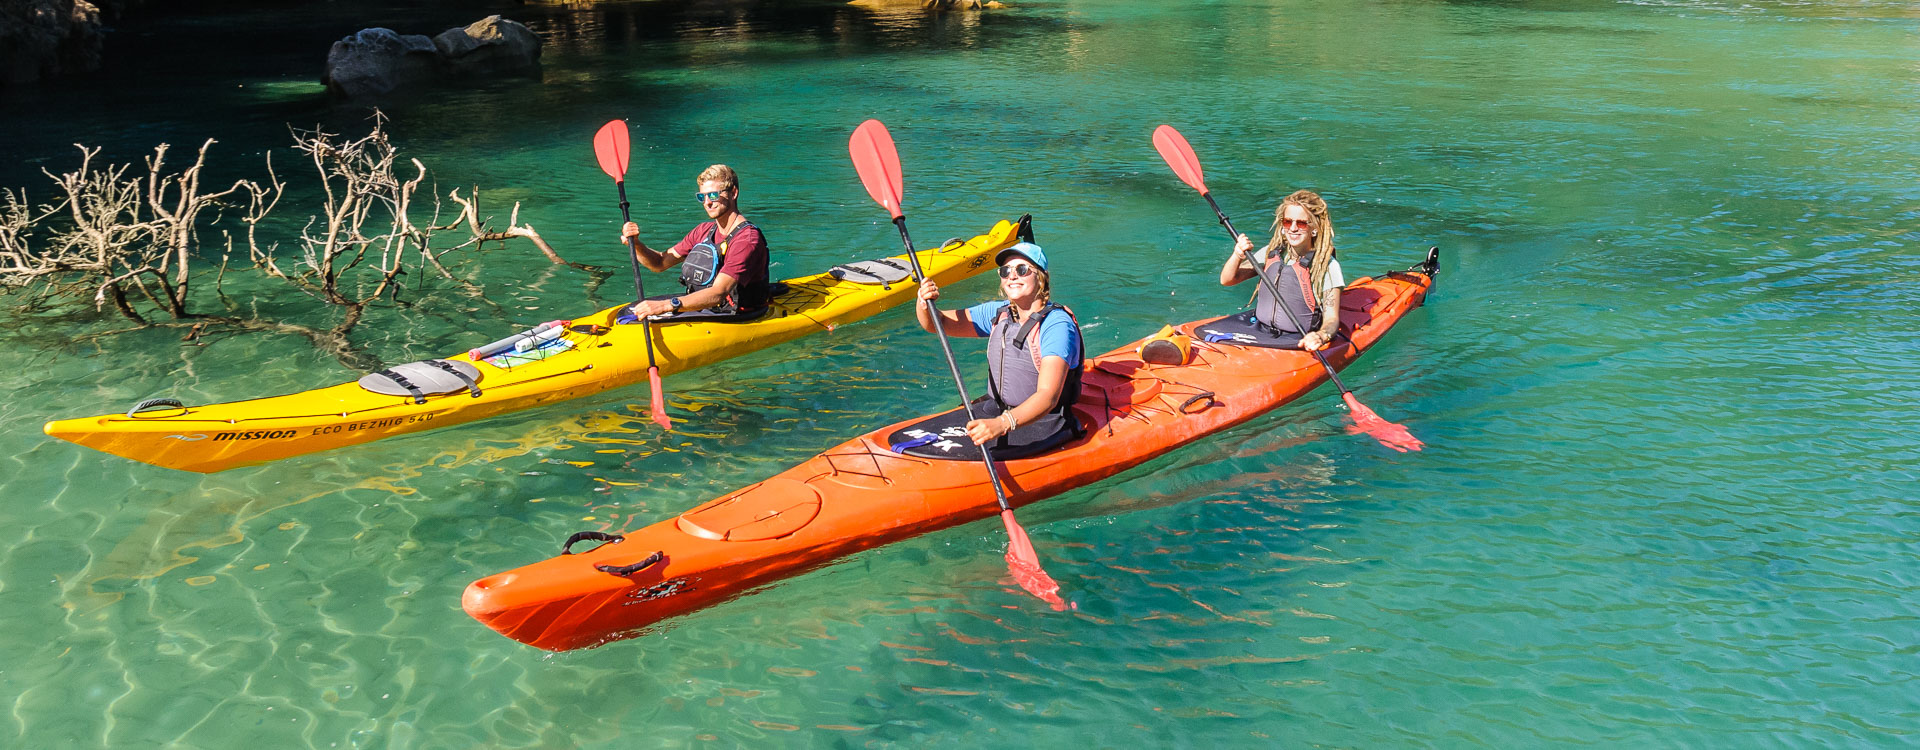 Marahau Sea Kayaks - MSK - Homeward Bound - A 3 day Kayak & Walk Trip exploring the Abel Tasman Coastline